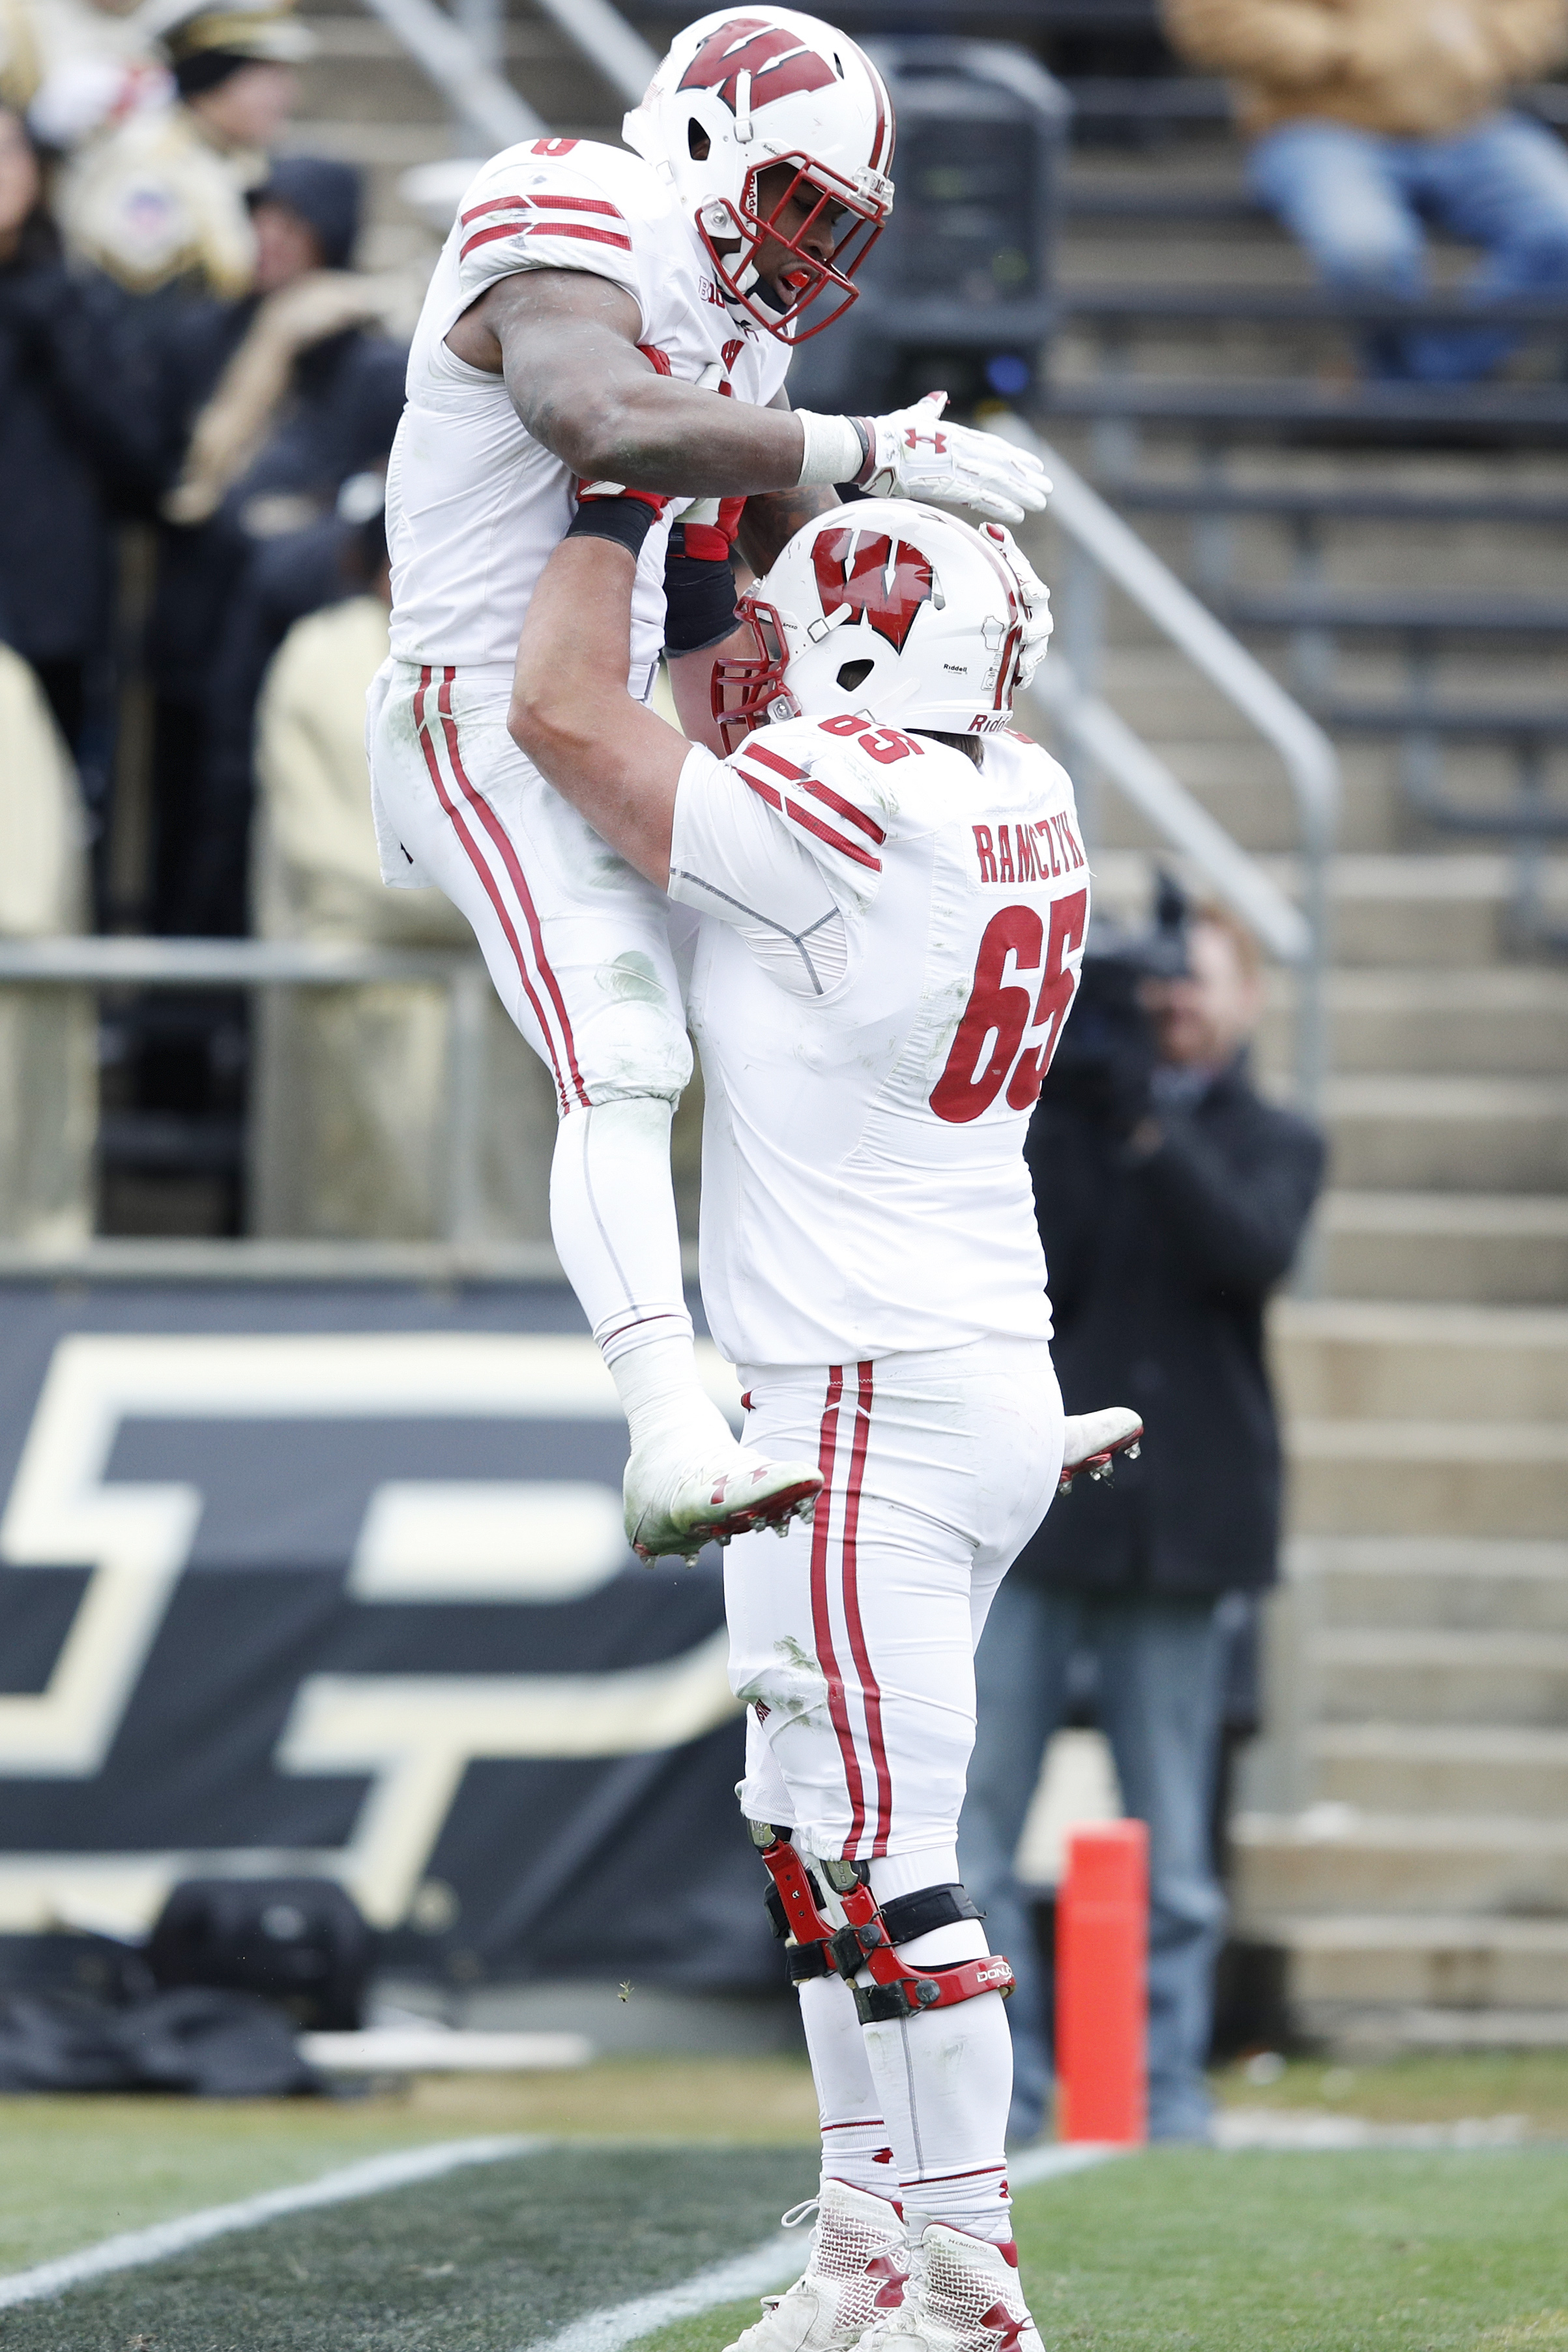 Wisconsin Badgers offensive tackle Ryan Ramczyk lifts Corey Clement after Clement rushed for a touchdown. (Photo by Joe Robbins/Getty Images)